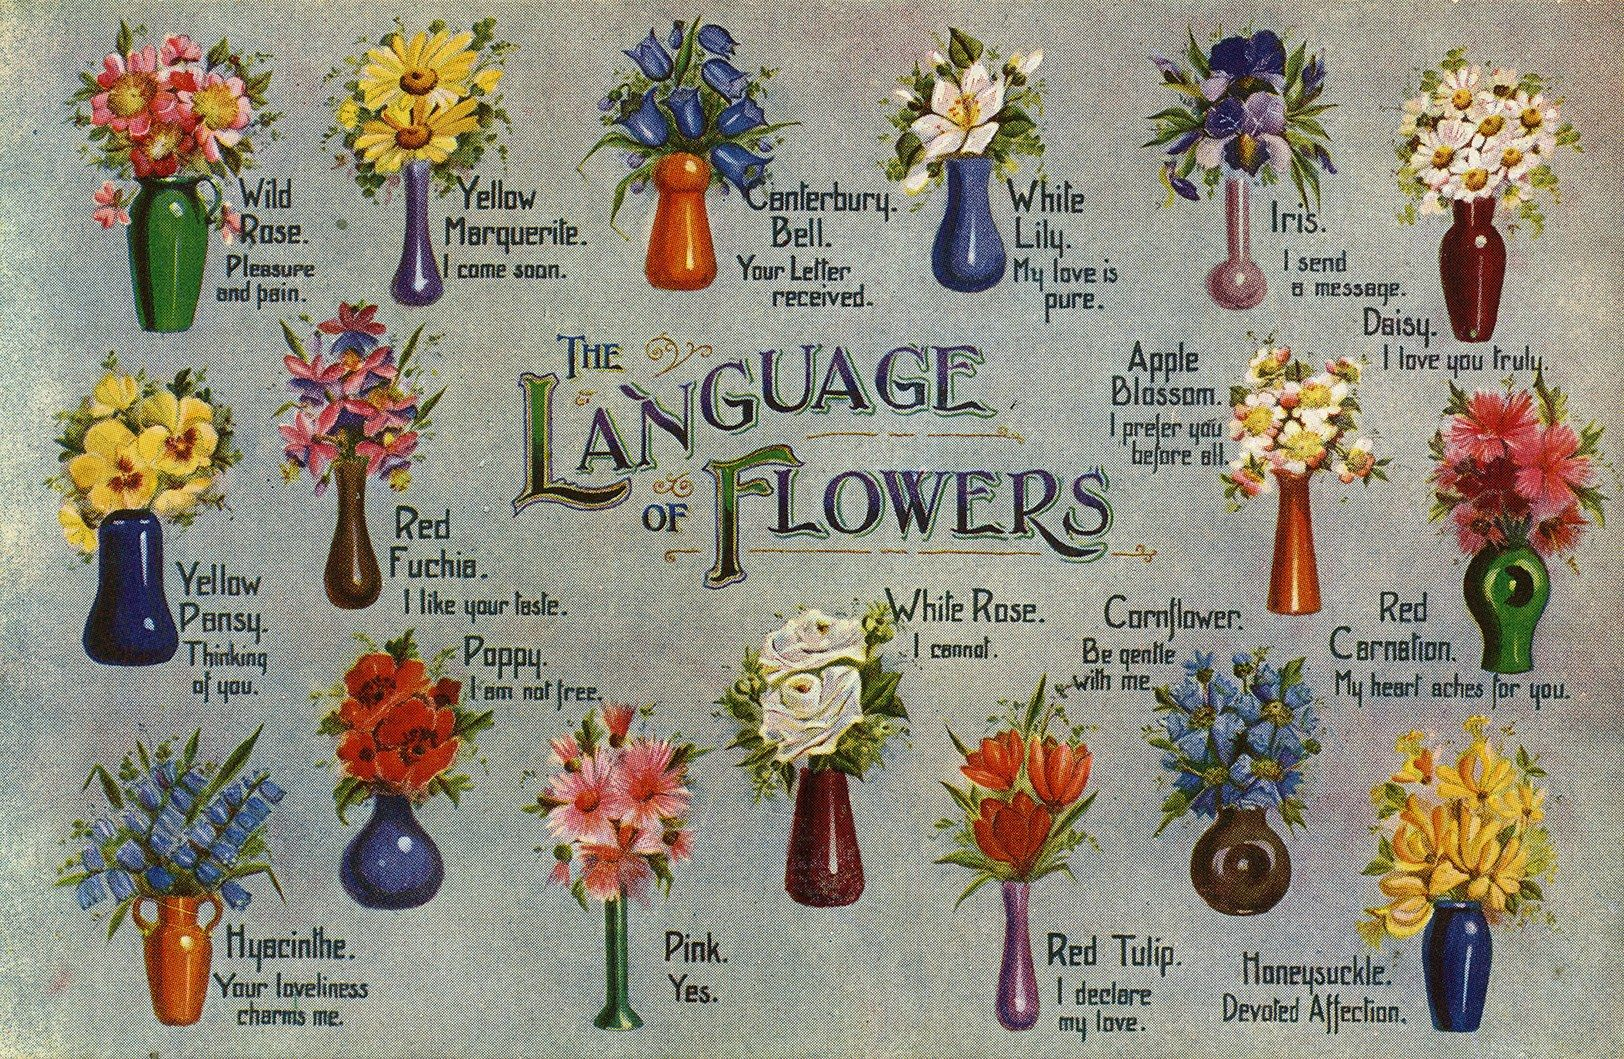 Flower Meanings The Language of Flowers Flower meanings